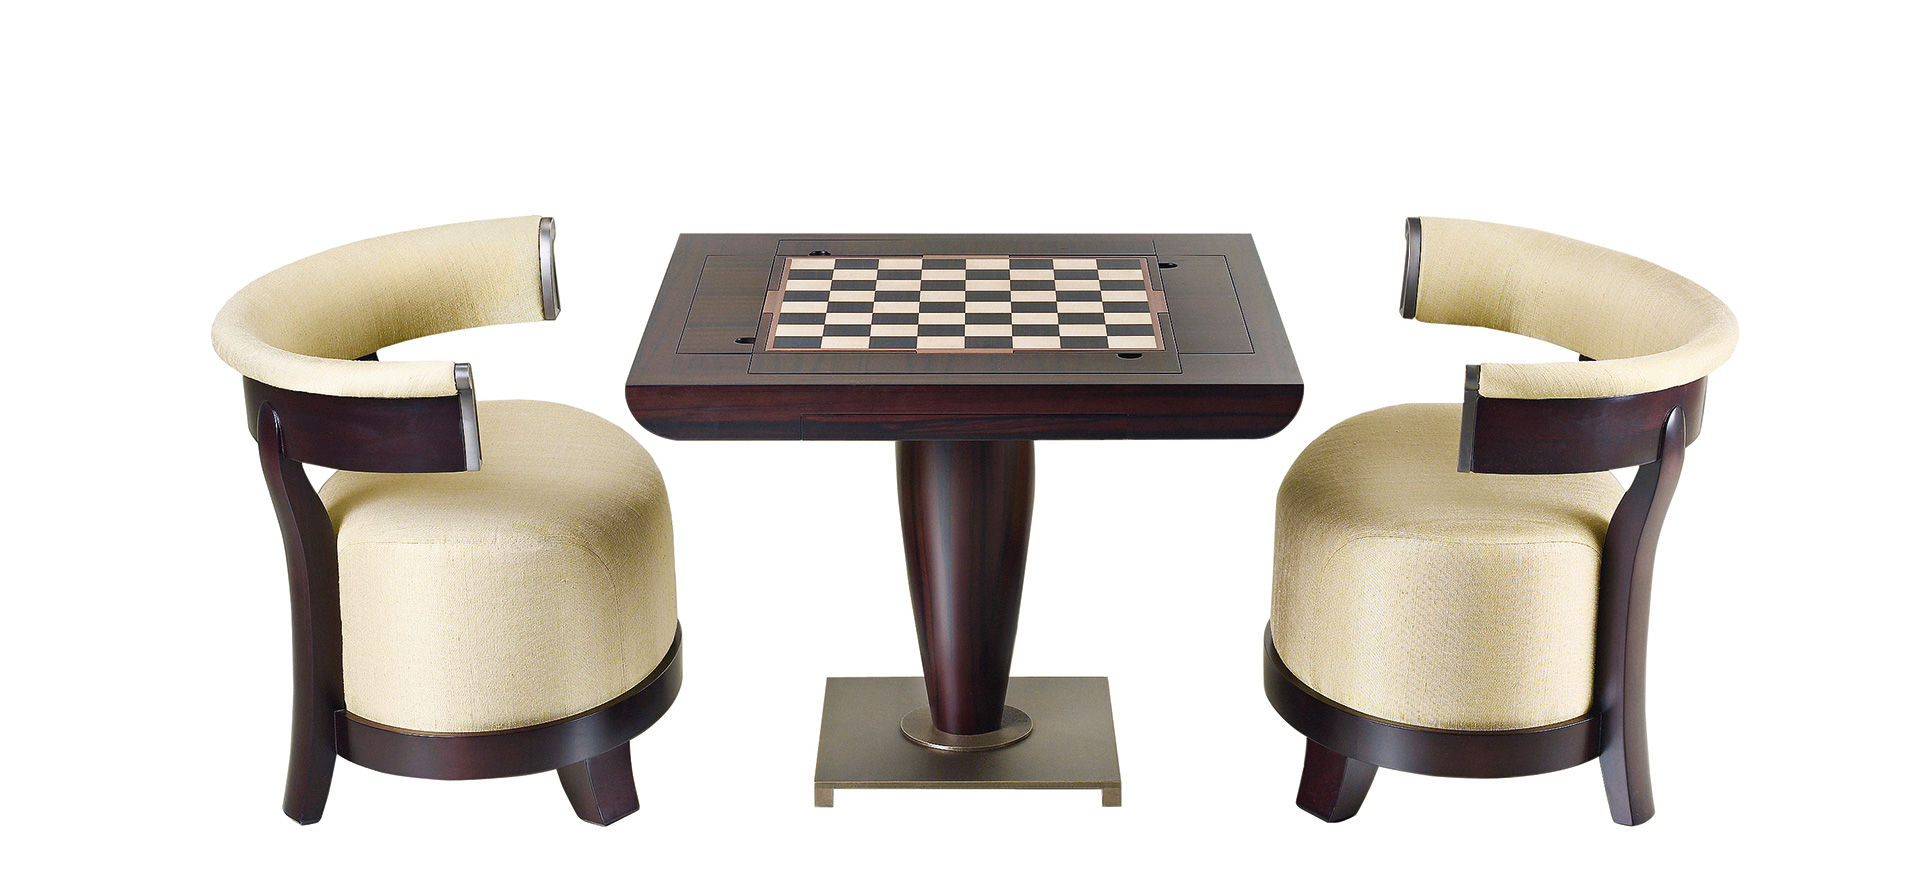 Bassano da gioco is a wooden gaming table with bronze base equipped for several board games, from Promemoria's catalogue | Promemoria